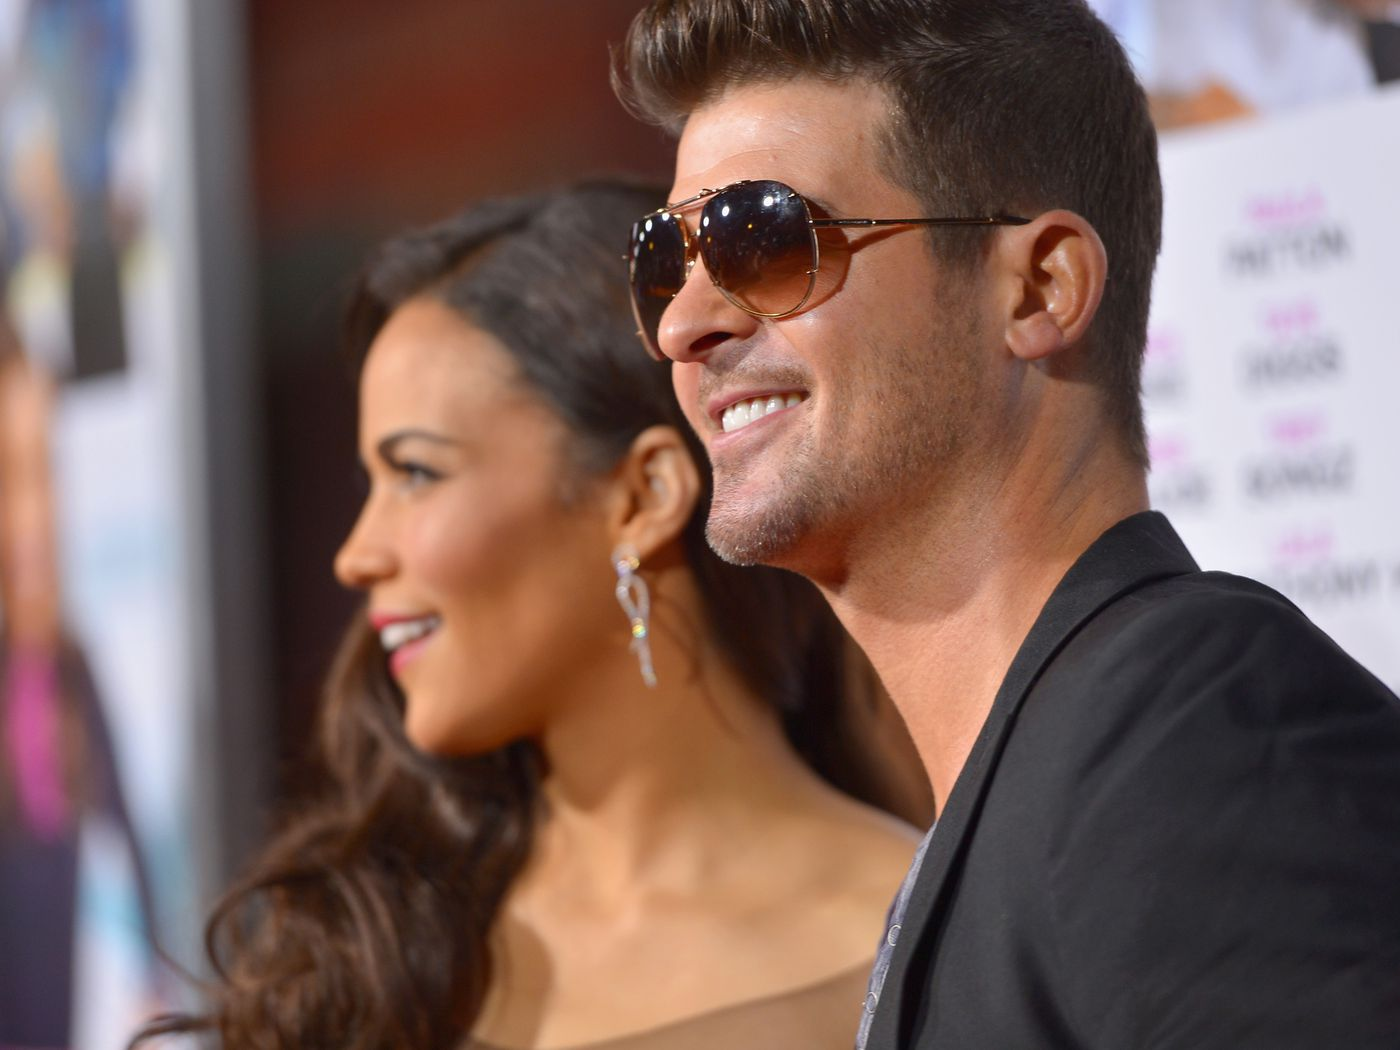 To Hate Robin Thicke You Have To Know Robin Thicke Vox